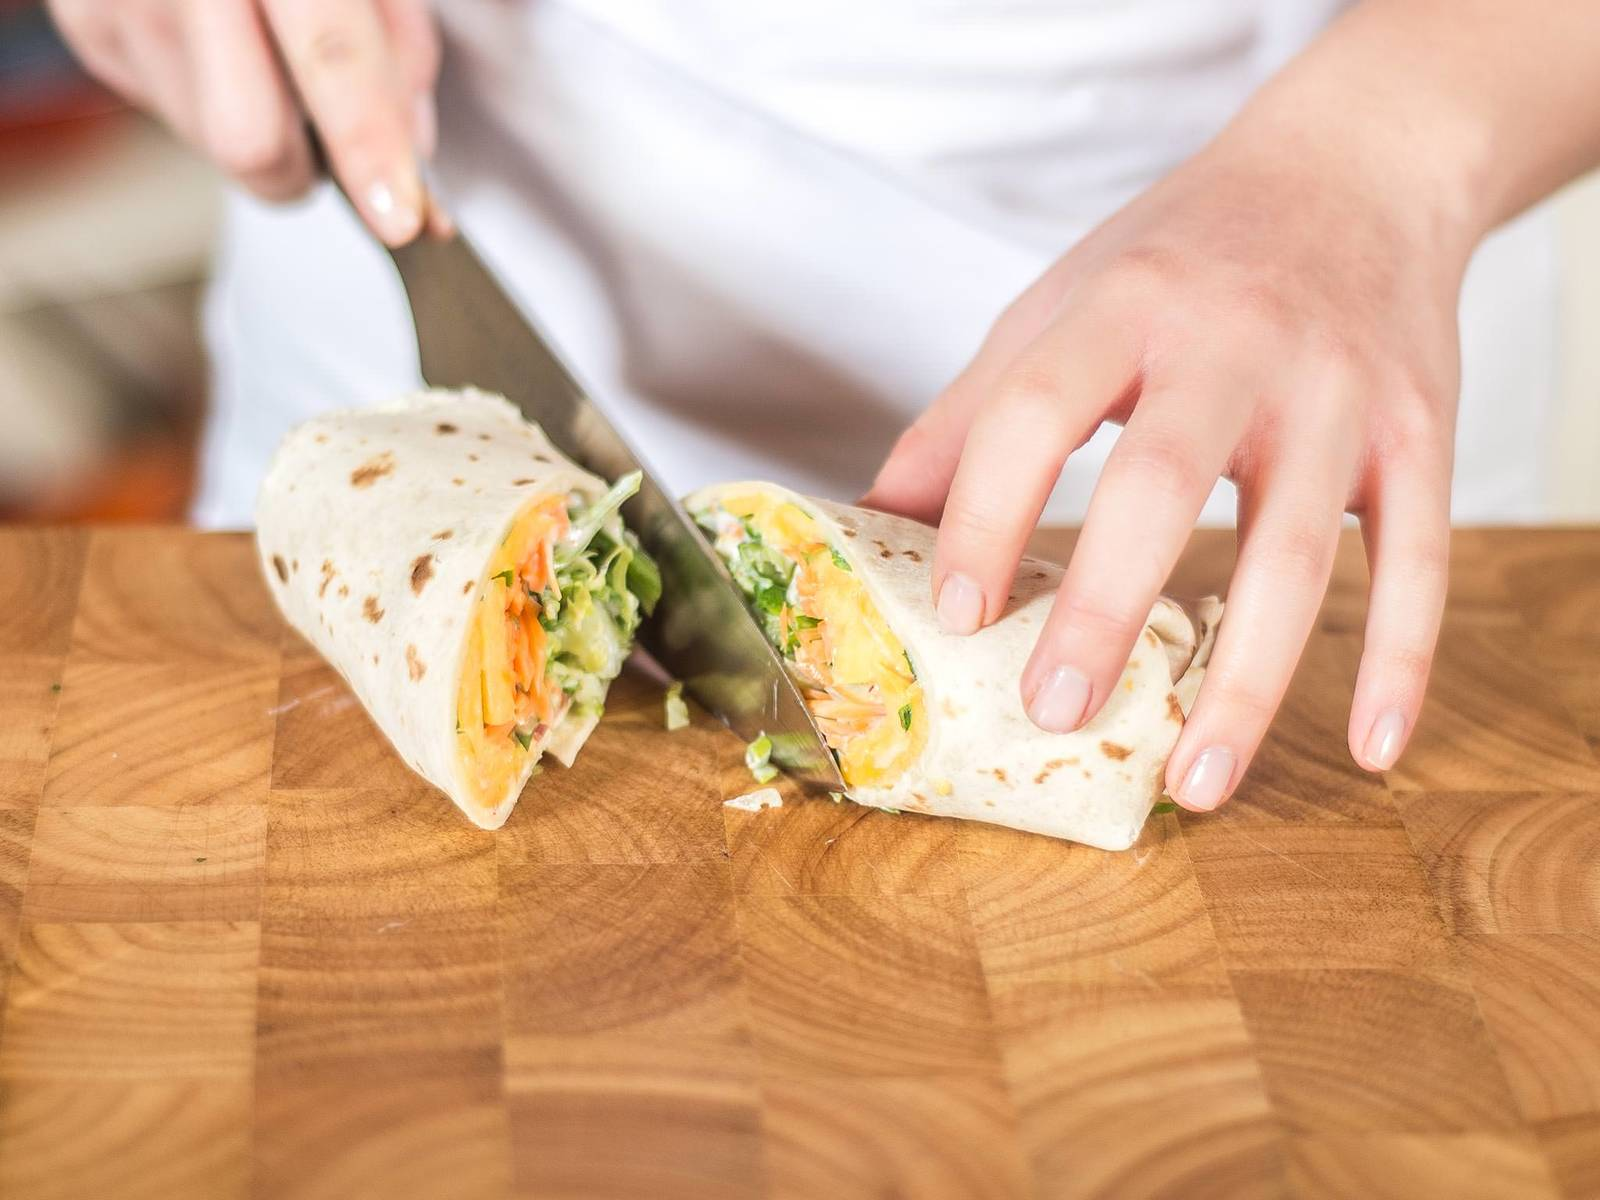 Cut the wrap diagonally across the middle to serve. This makes it pleasing to the eye and easy to place decoratively onto a plate.